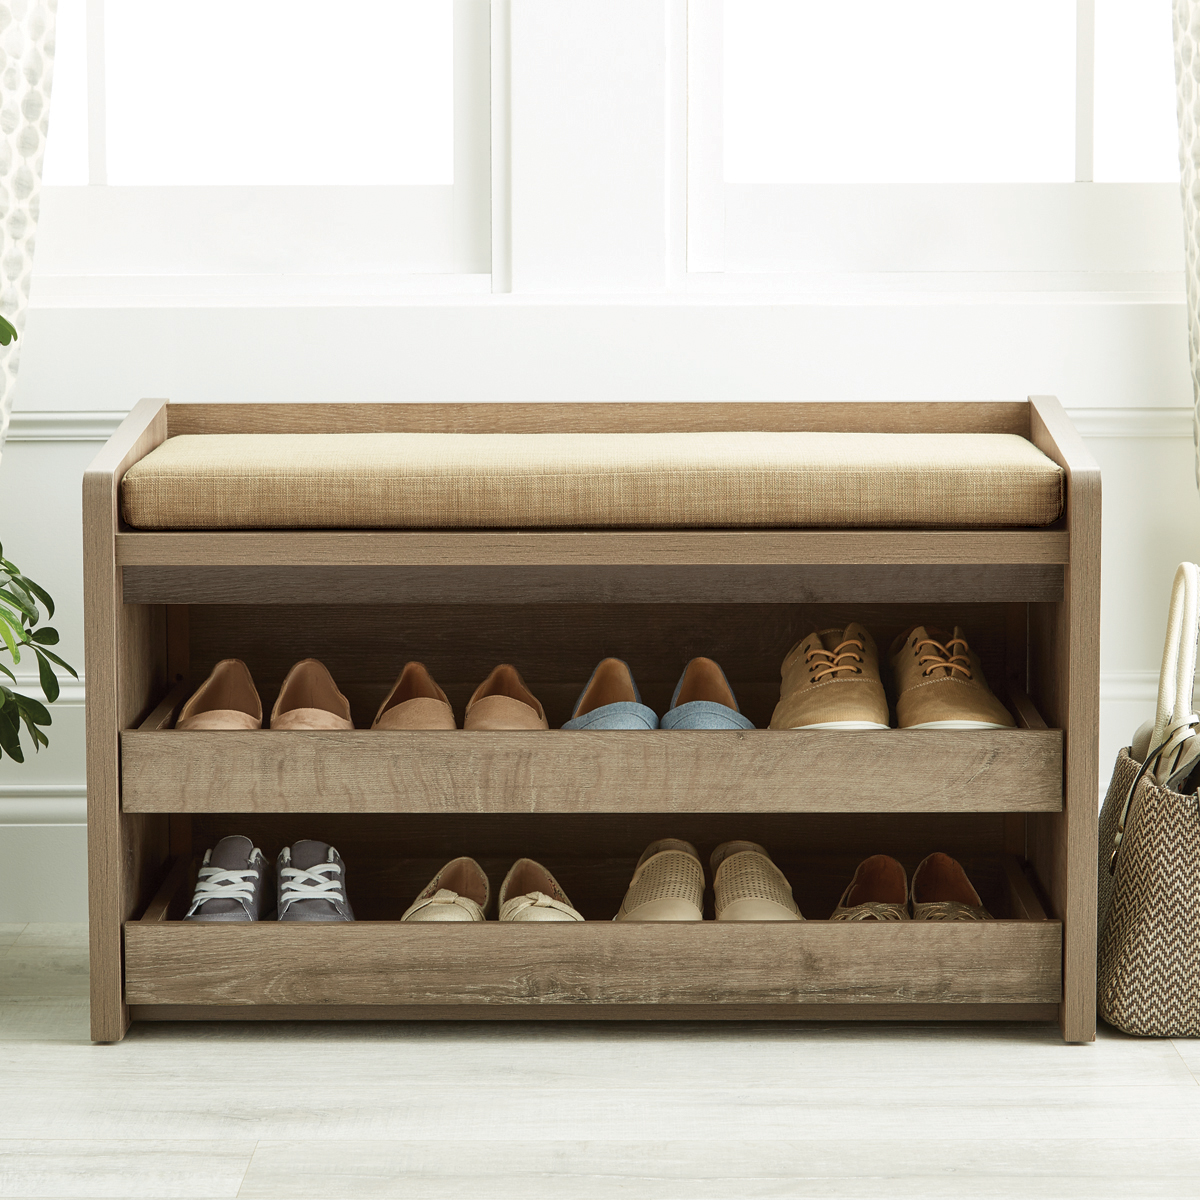 Rustic Driftwood Mercer Entryway Storage Bench